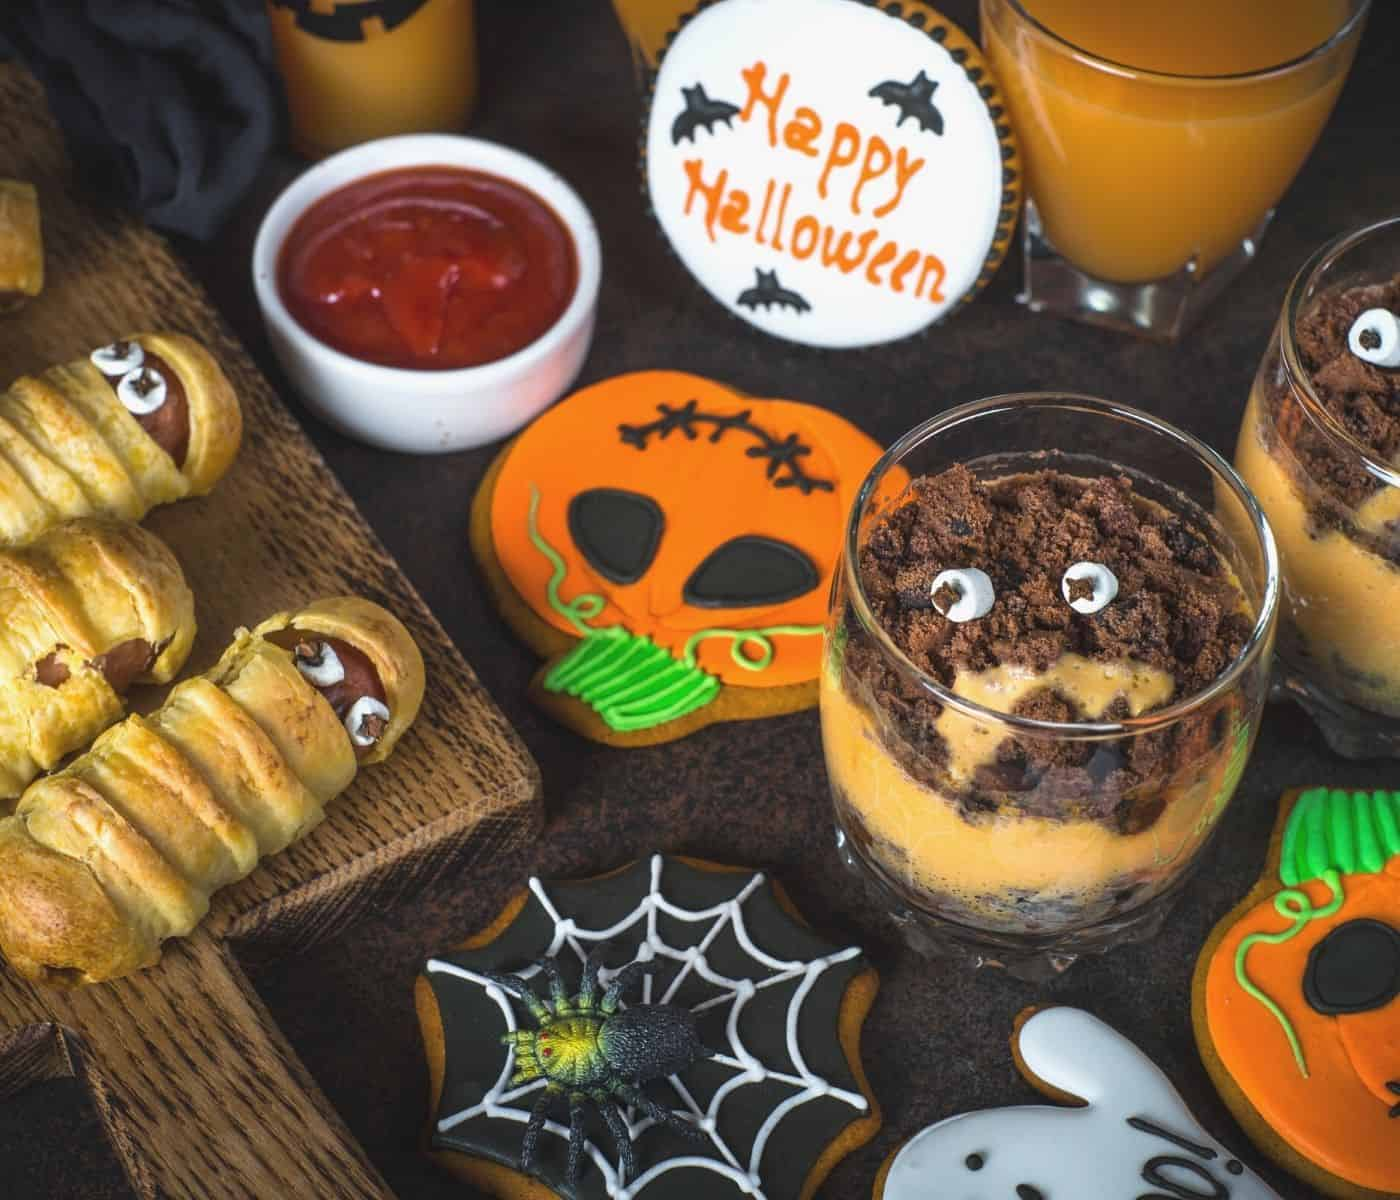 Creep and spooky Halloween party food on a table for adults.